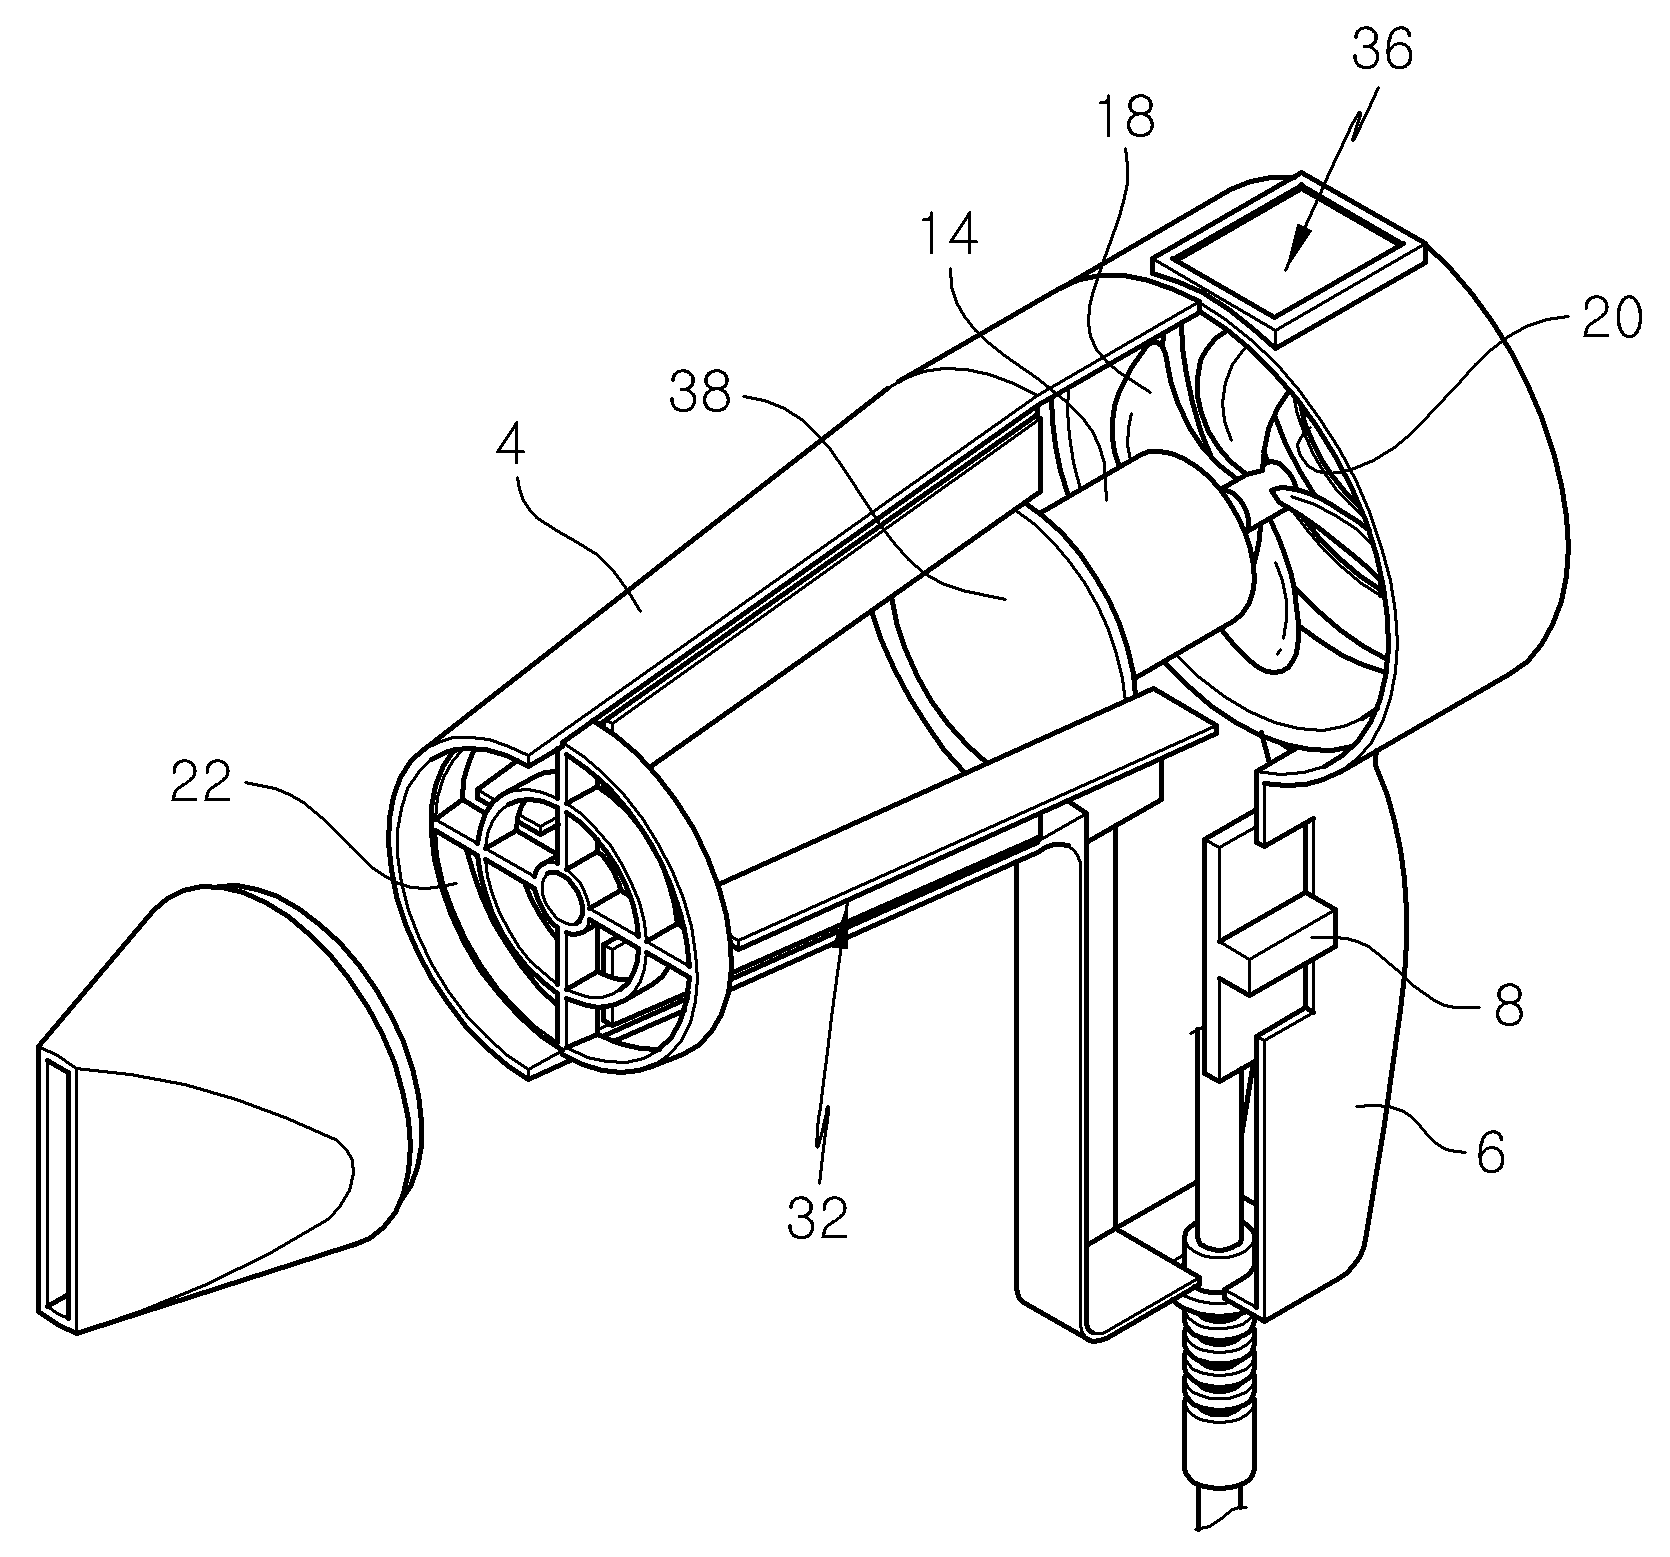 patent wo2009136739a2 - hairdryer